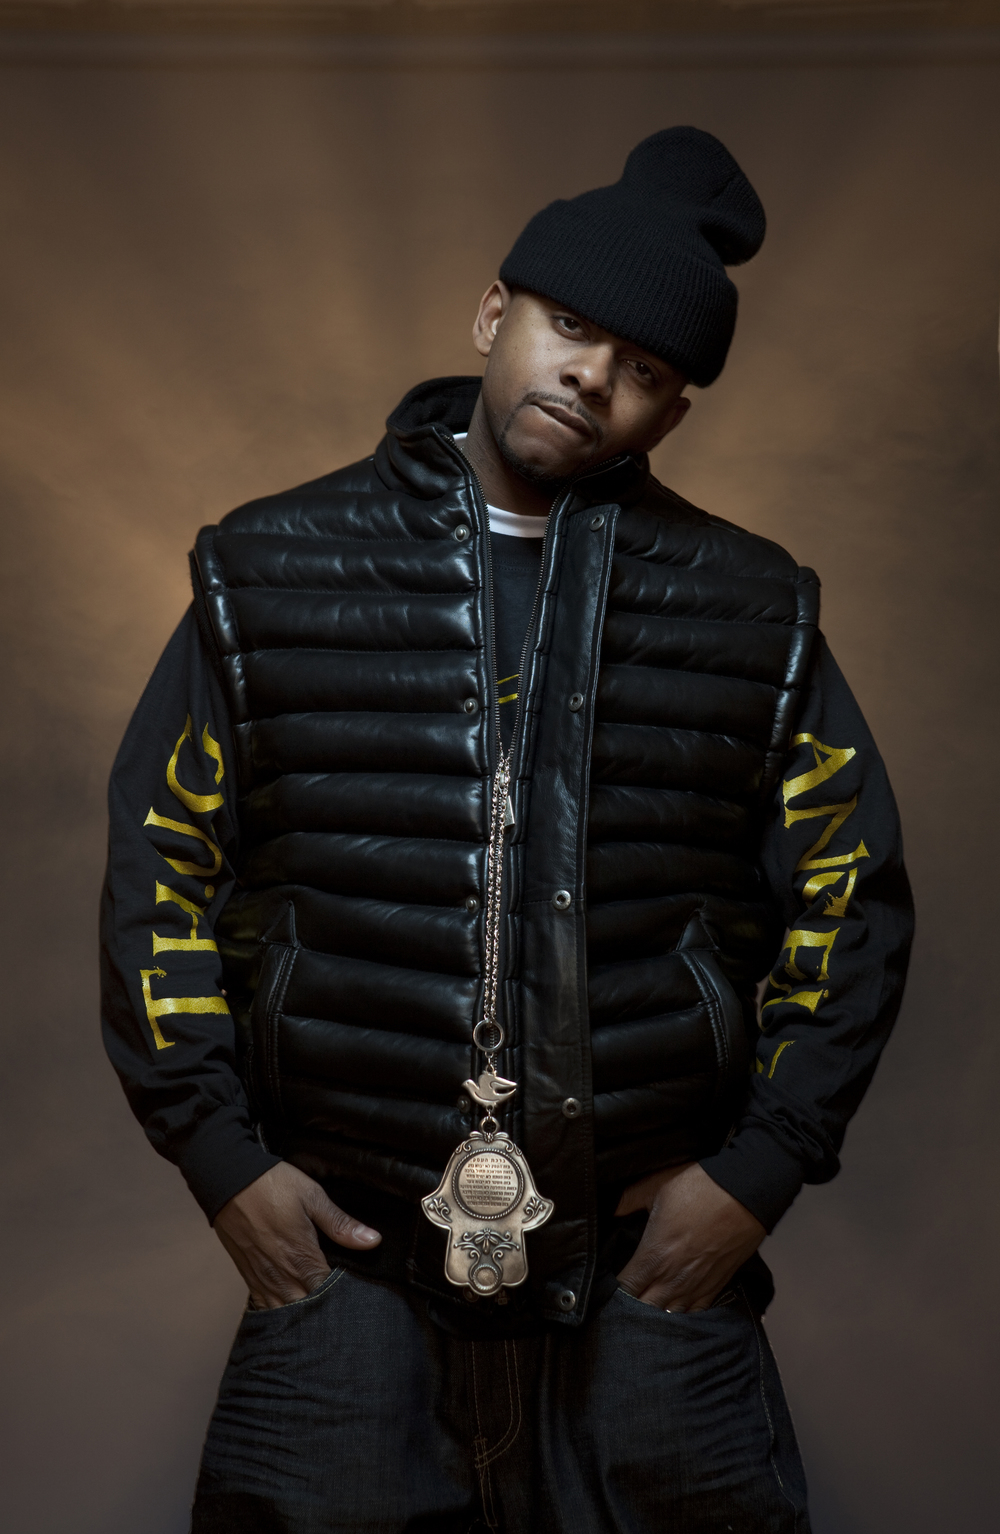 Hell Razah promo photo